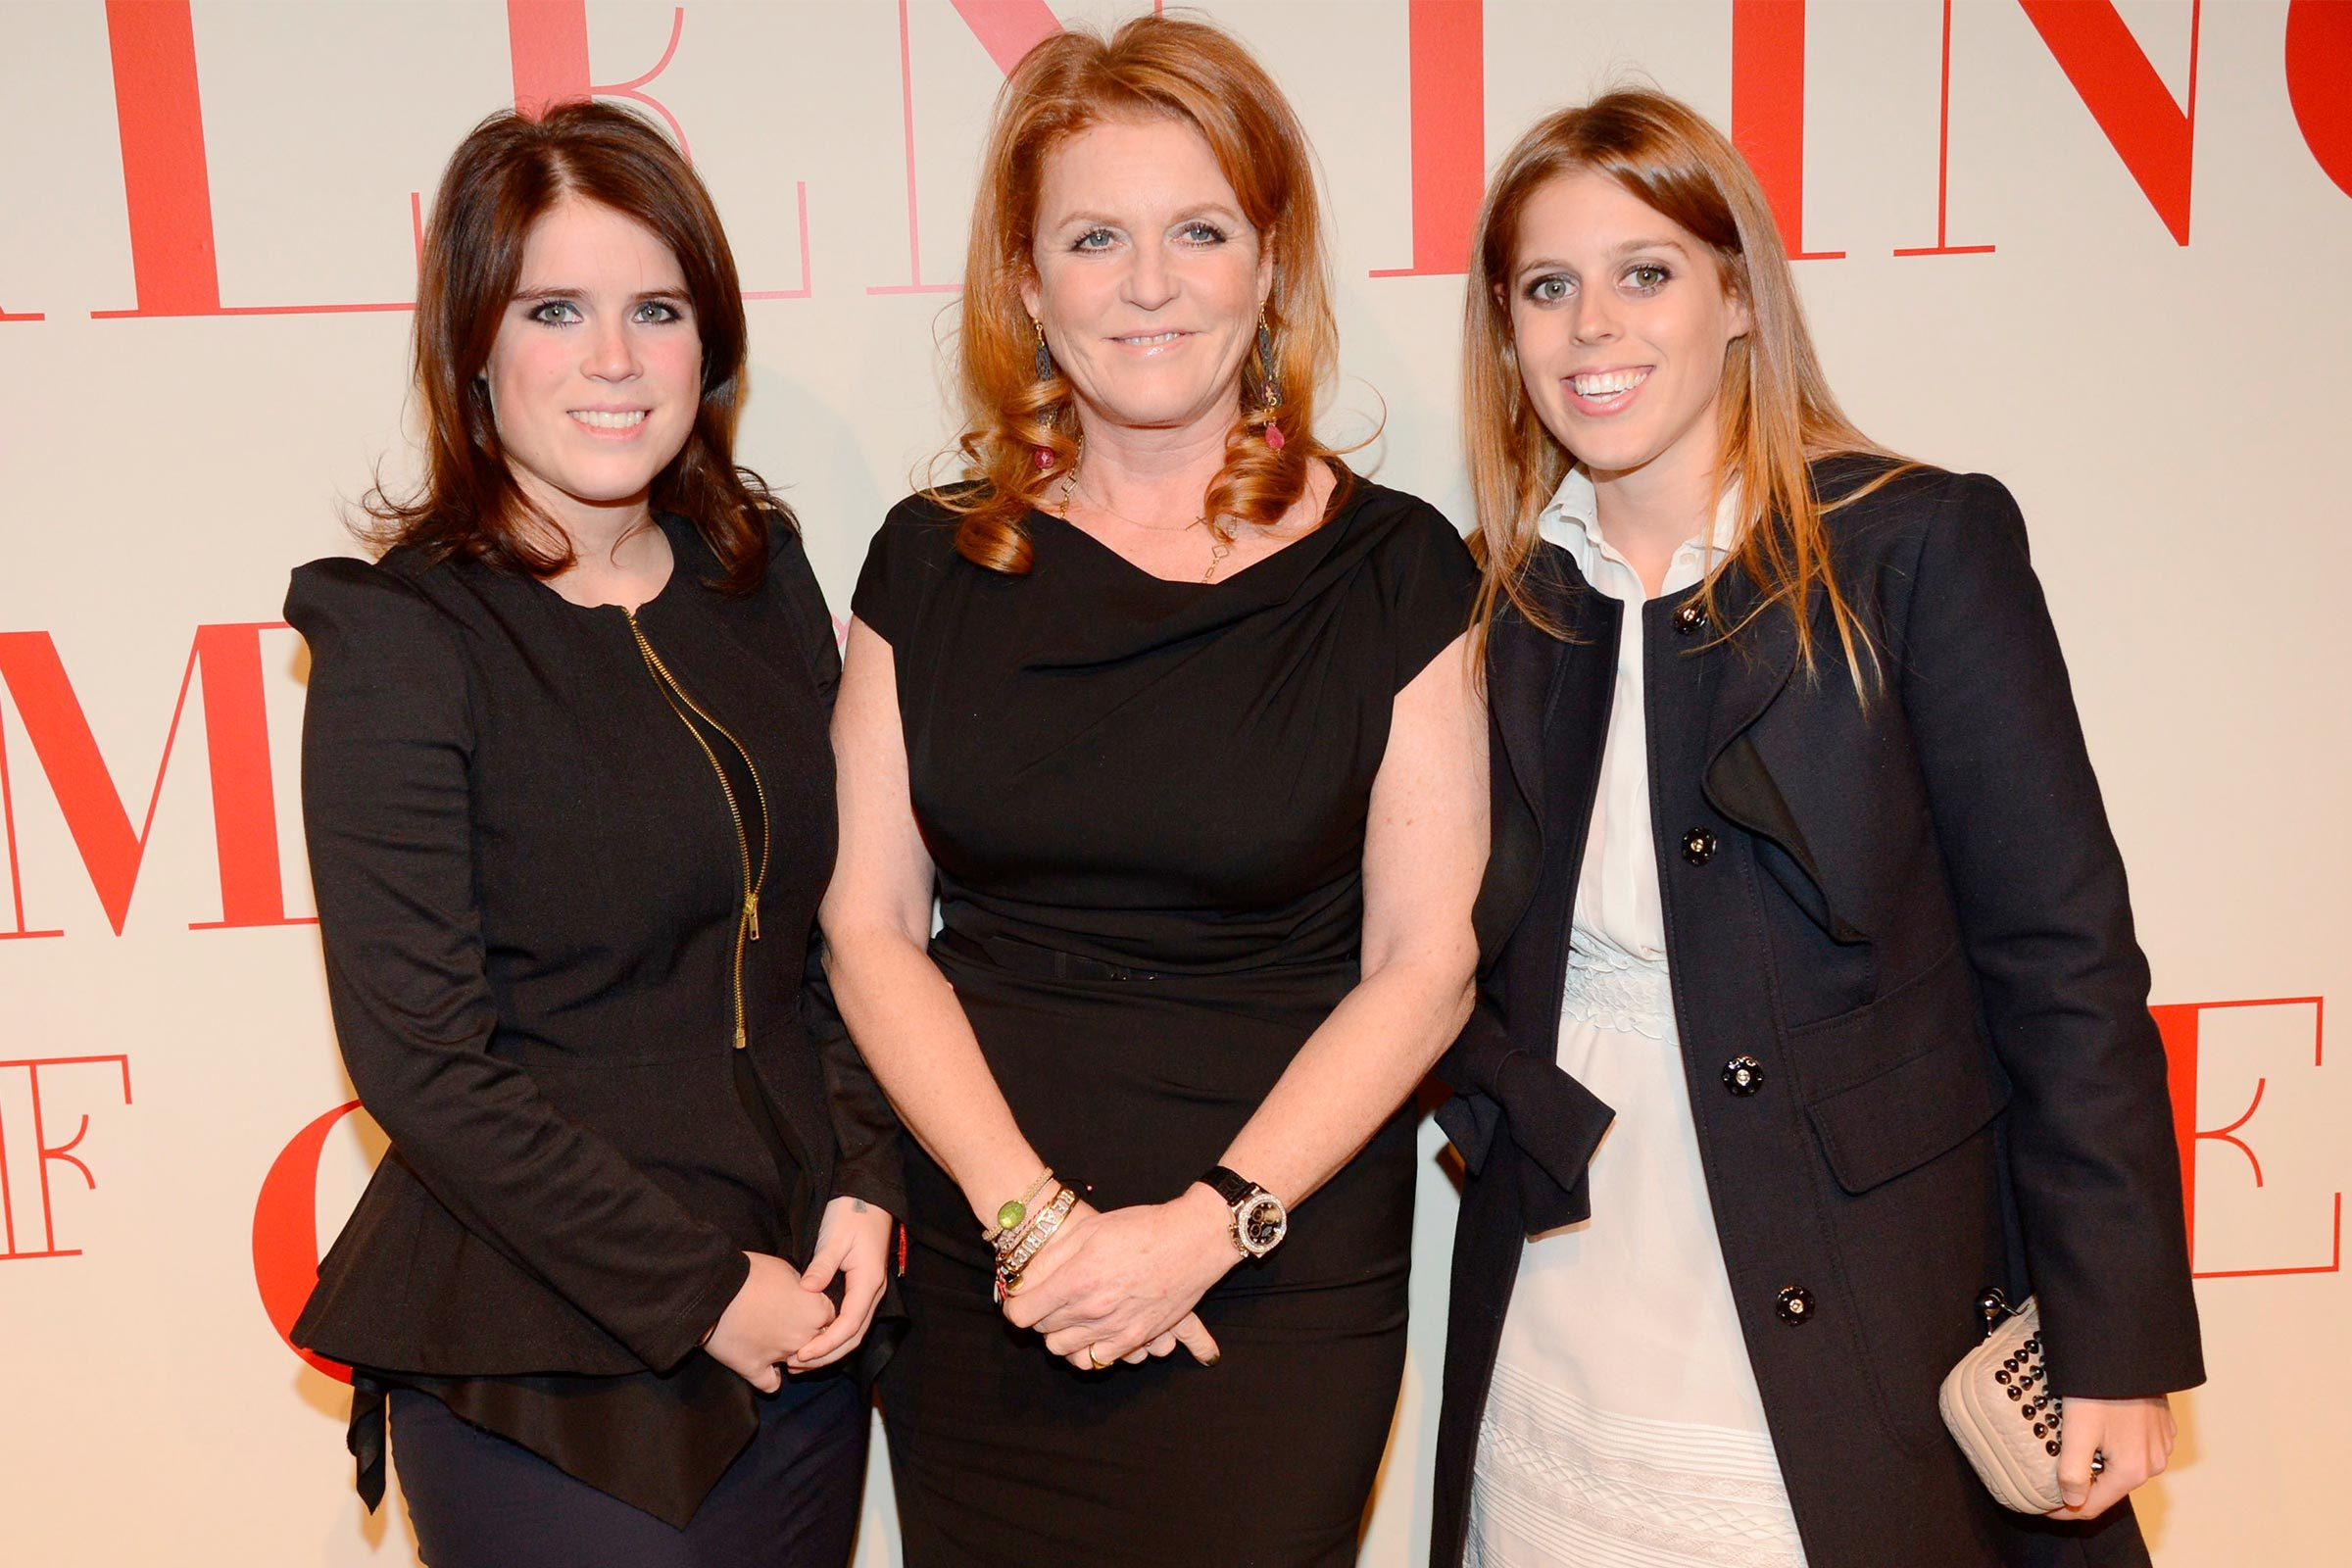 Sarah Ferguson and her daughters, Princess Eugenie and Princess Beatrice